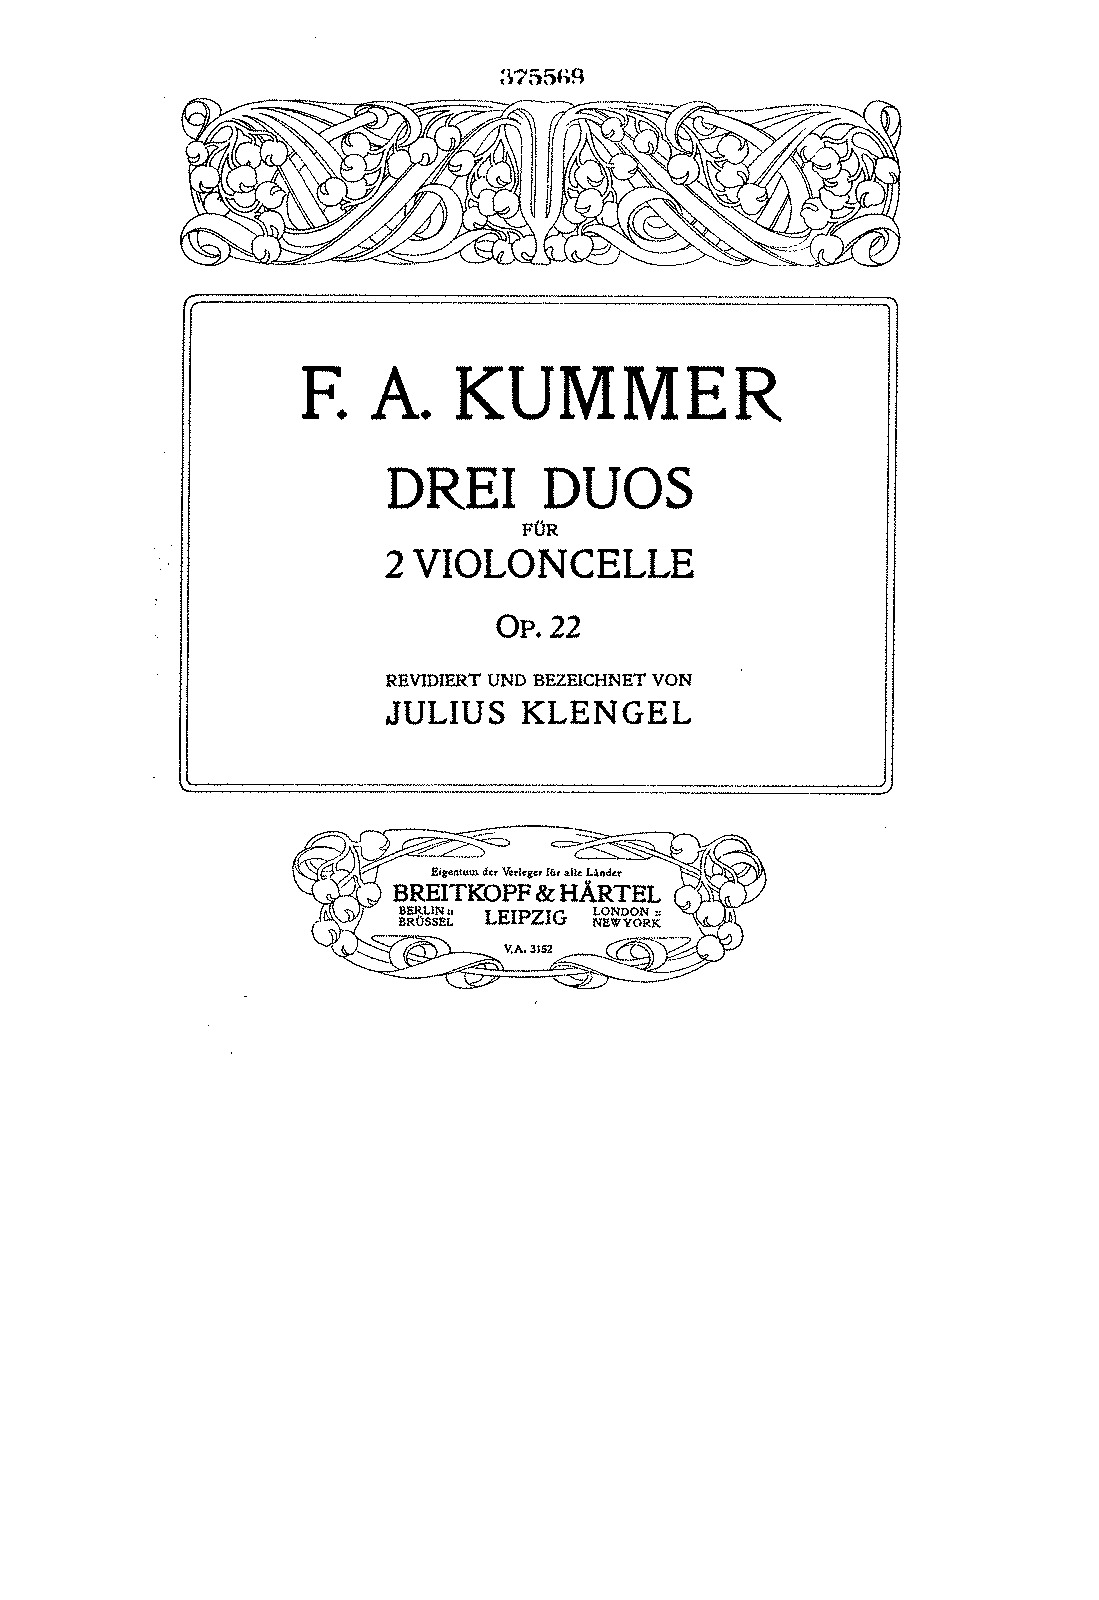 SIBLEY1802.15046.dbdd-39087009871544cello 1.pdf